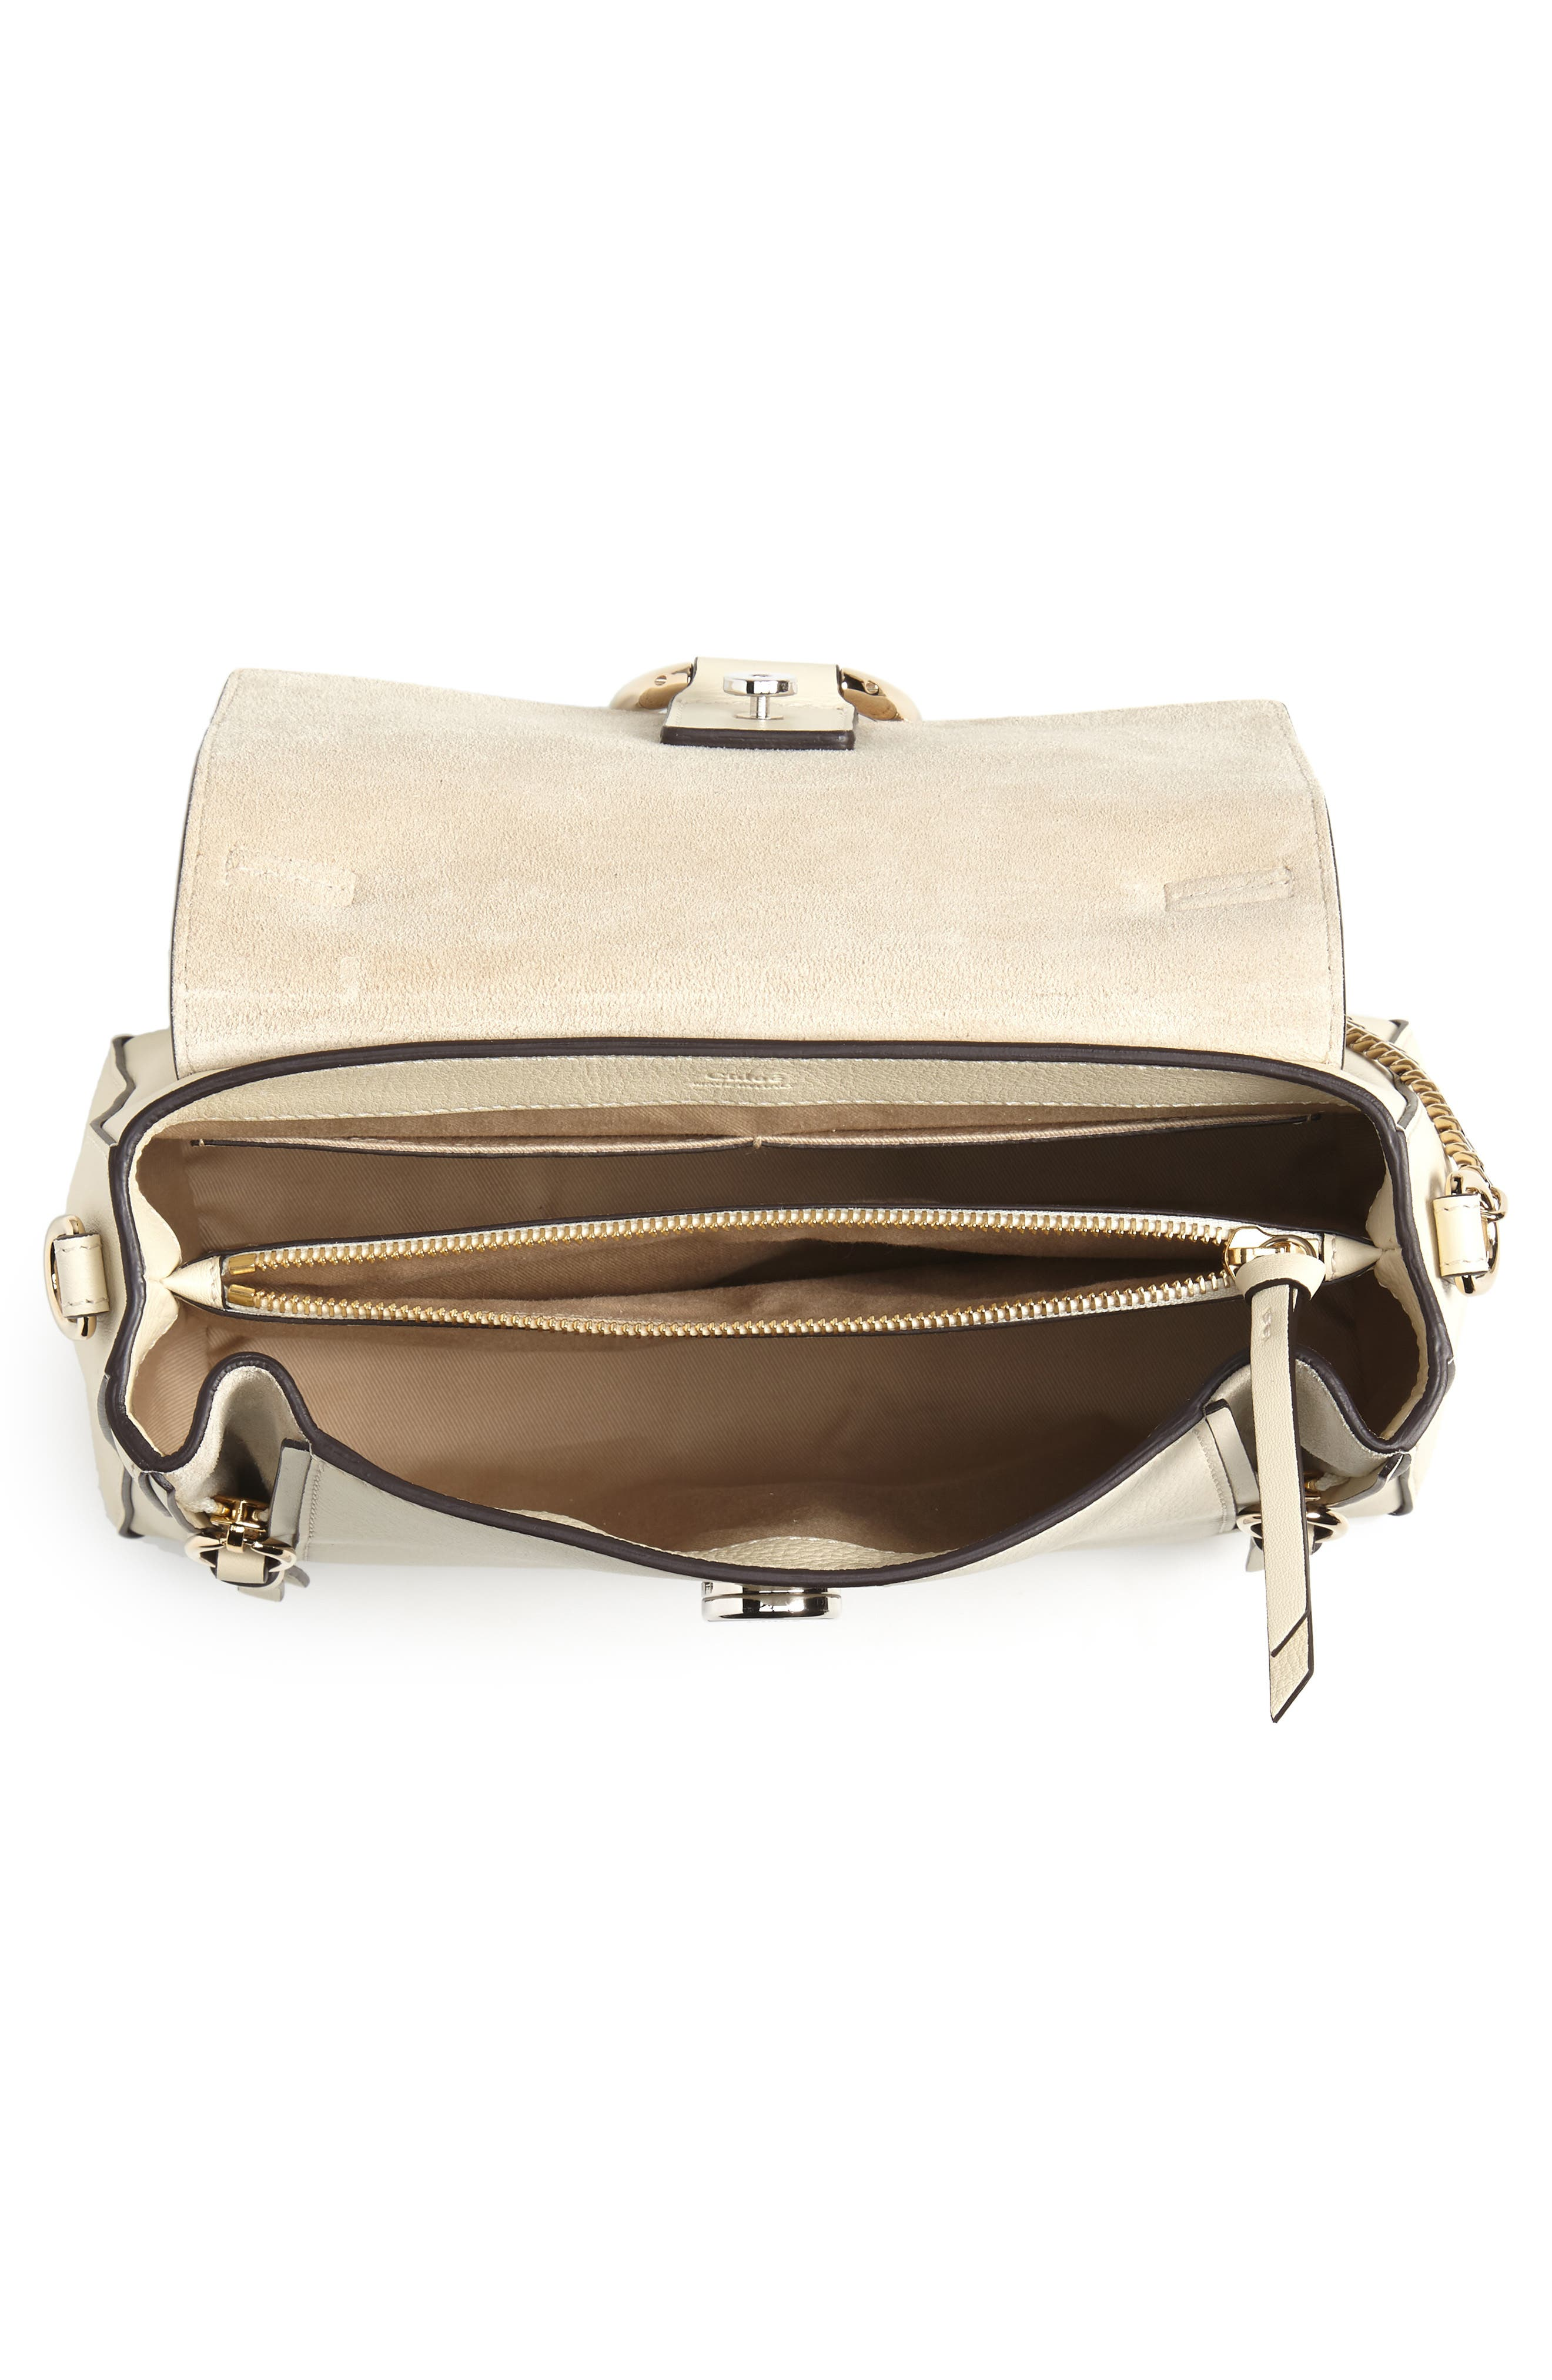 CHLOÉ,                             Small Faye Day Leather Shoulder Bag,                             Alternate thumbnail 4, color,                             905